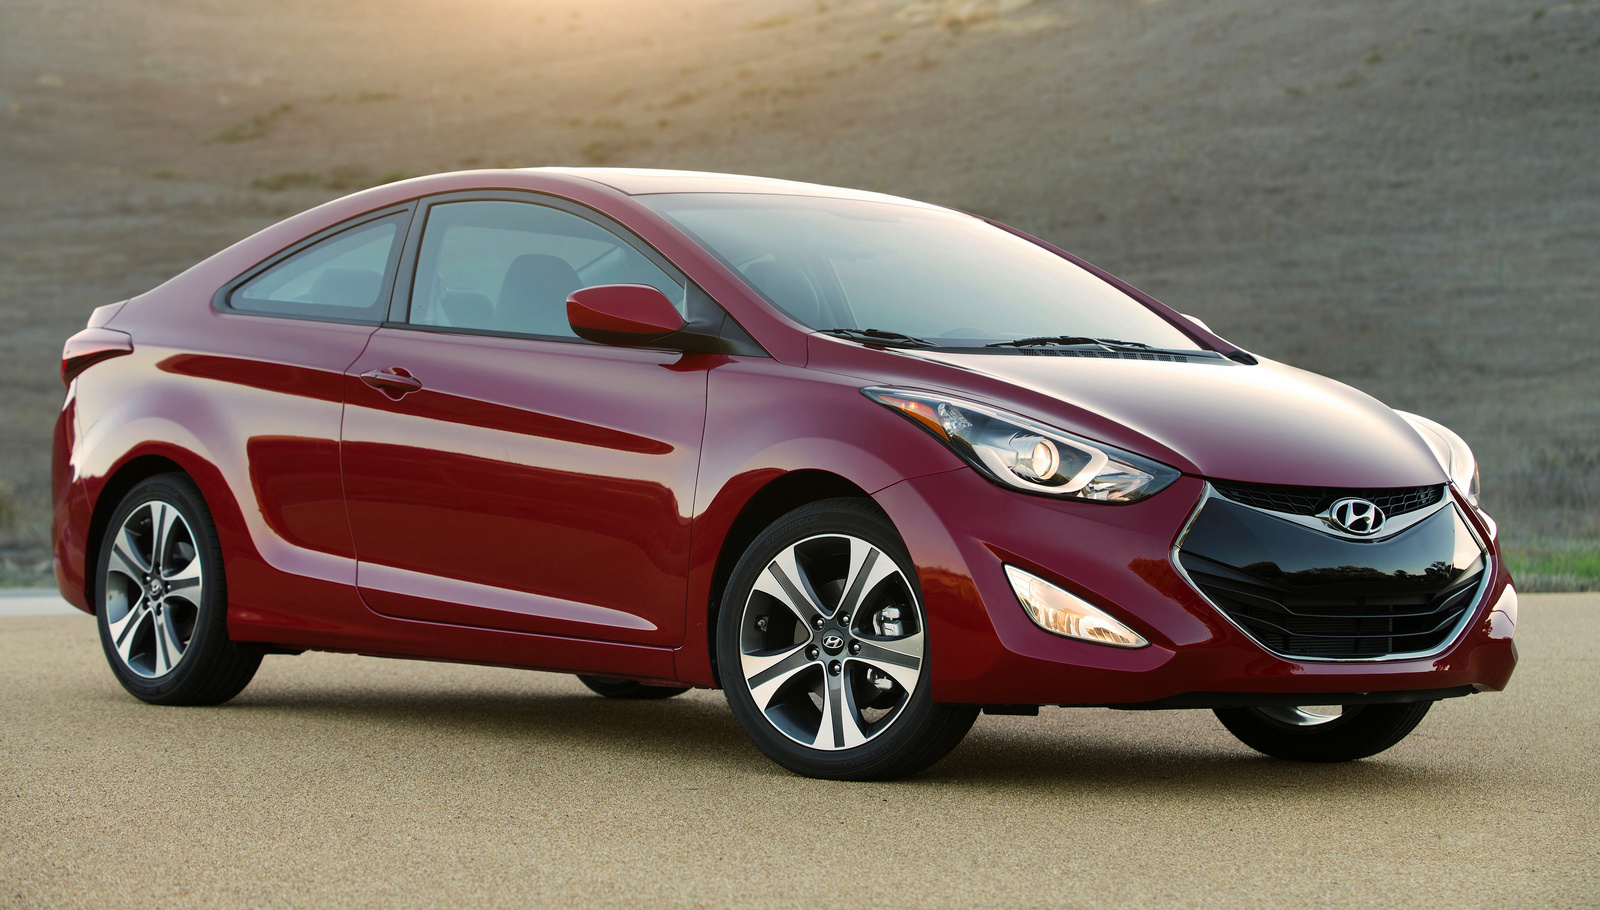 2014 Hyundai Elantra Coupe Review Cargurus